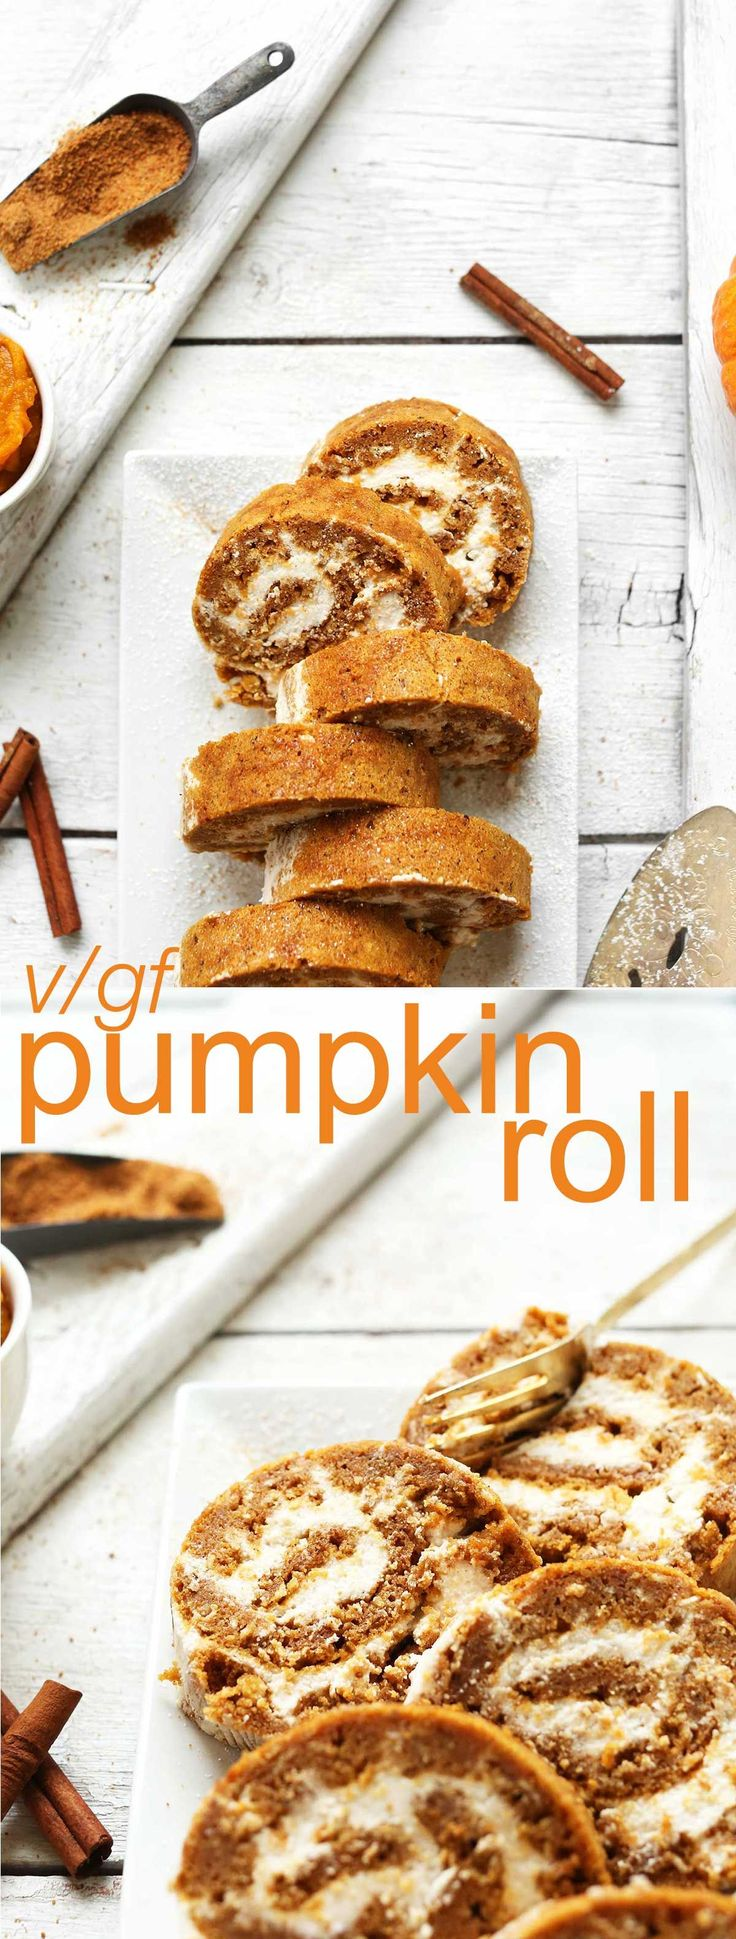 Vegan Gluten Free Pumpkin Roll! Easy to make and SO delicious! #vegan #glutenfree #pumpkin